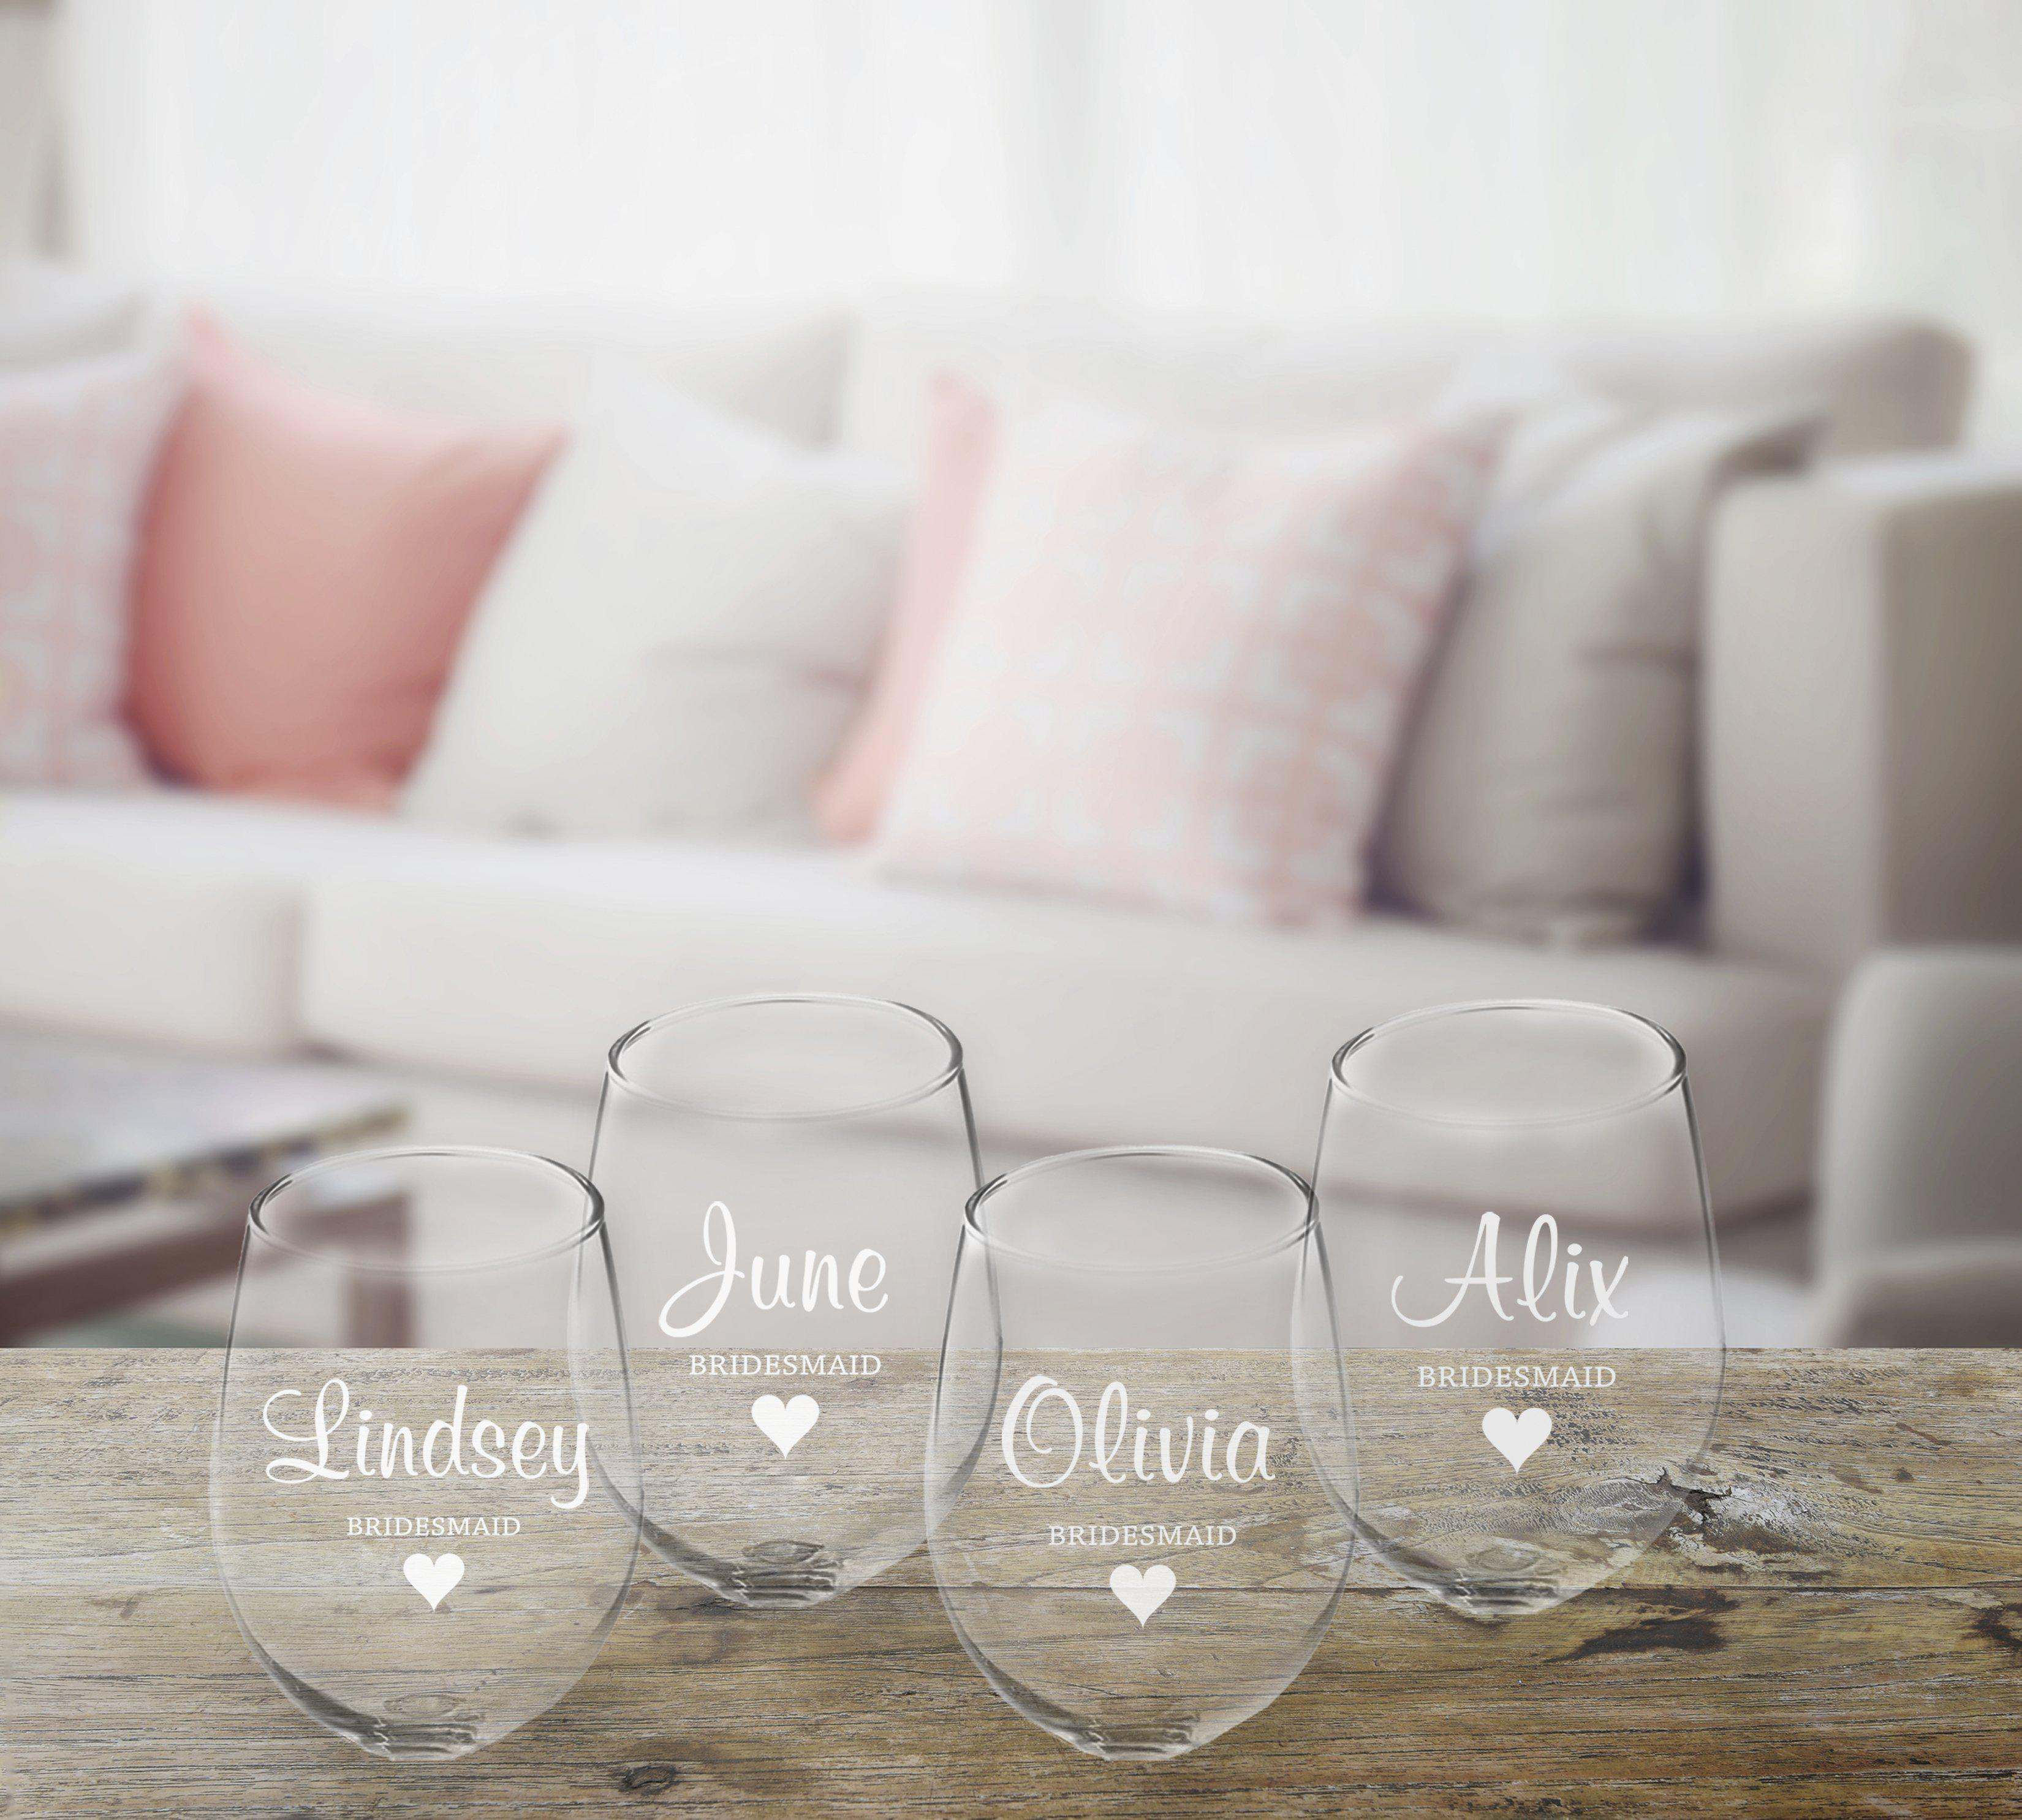 Personalized Bridal Party Stemless Wine Glass - Set of 4